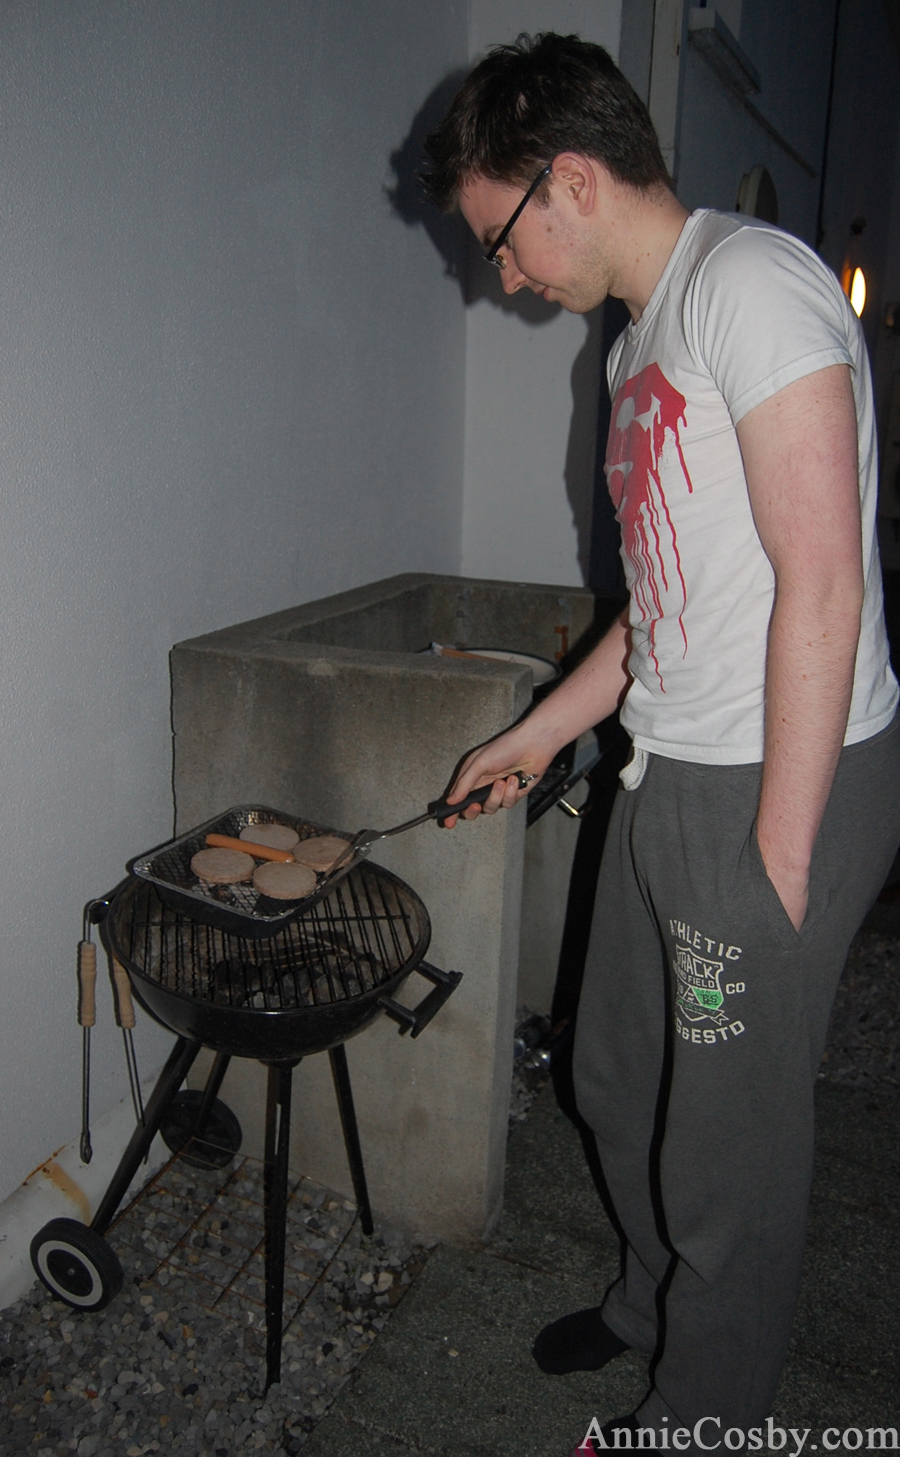 Irish boy grill master